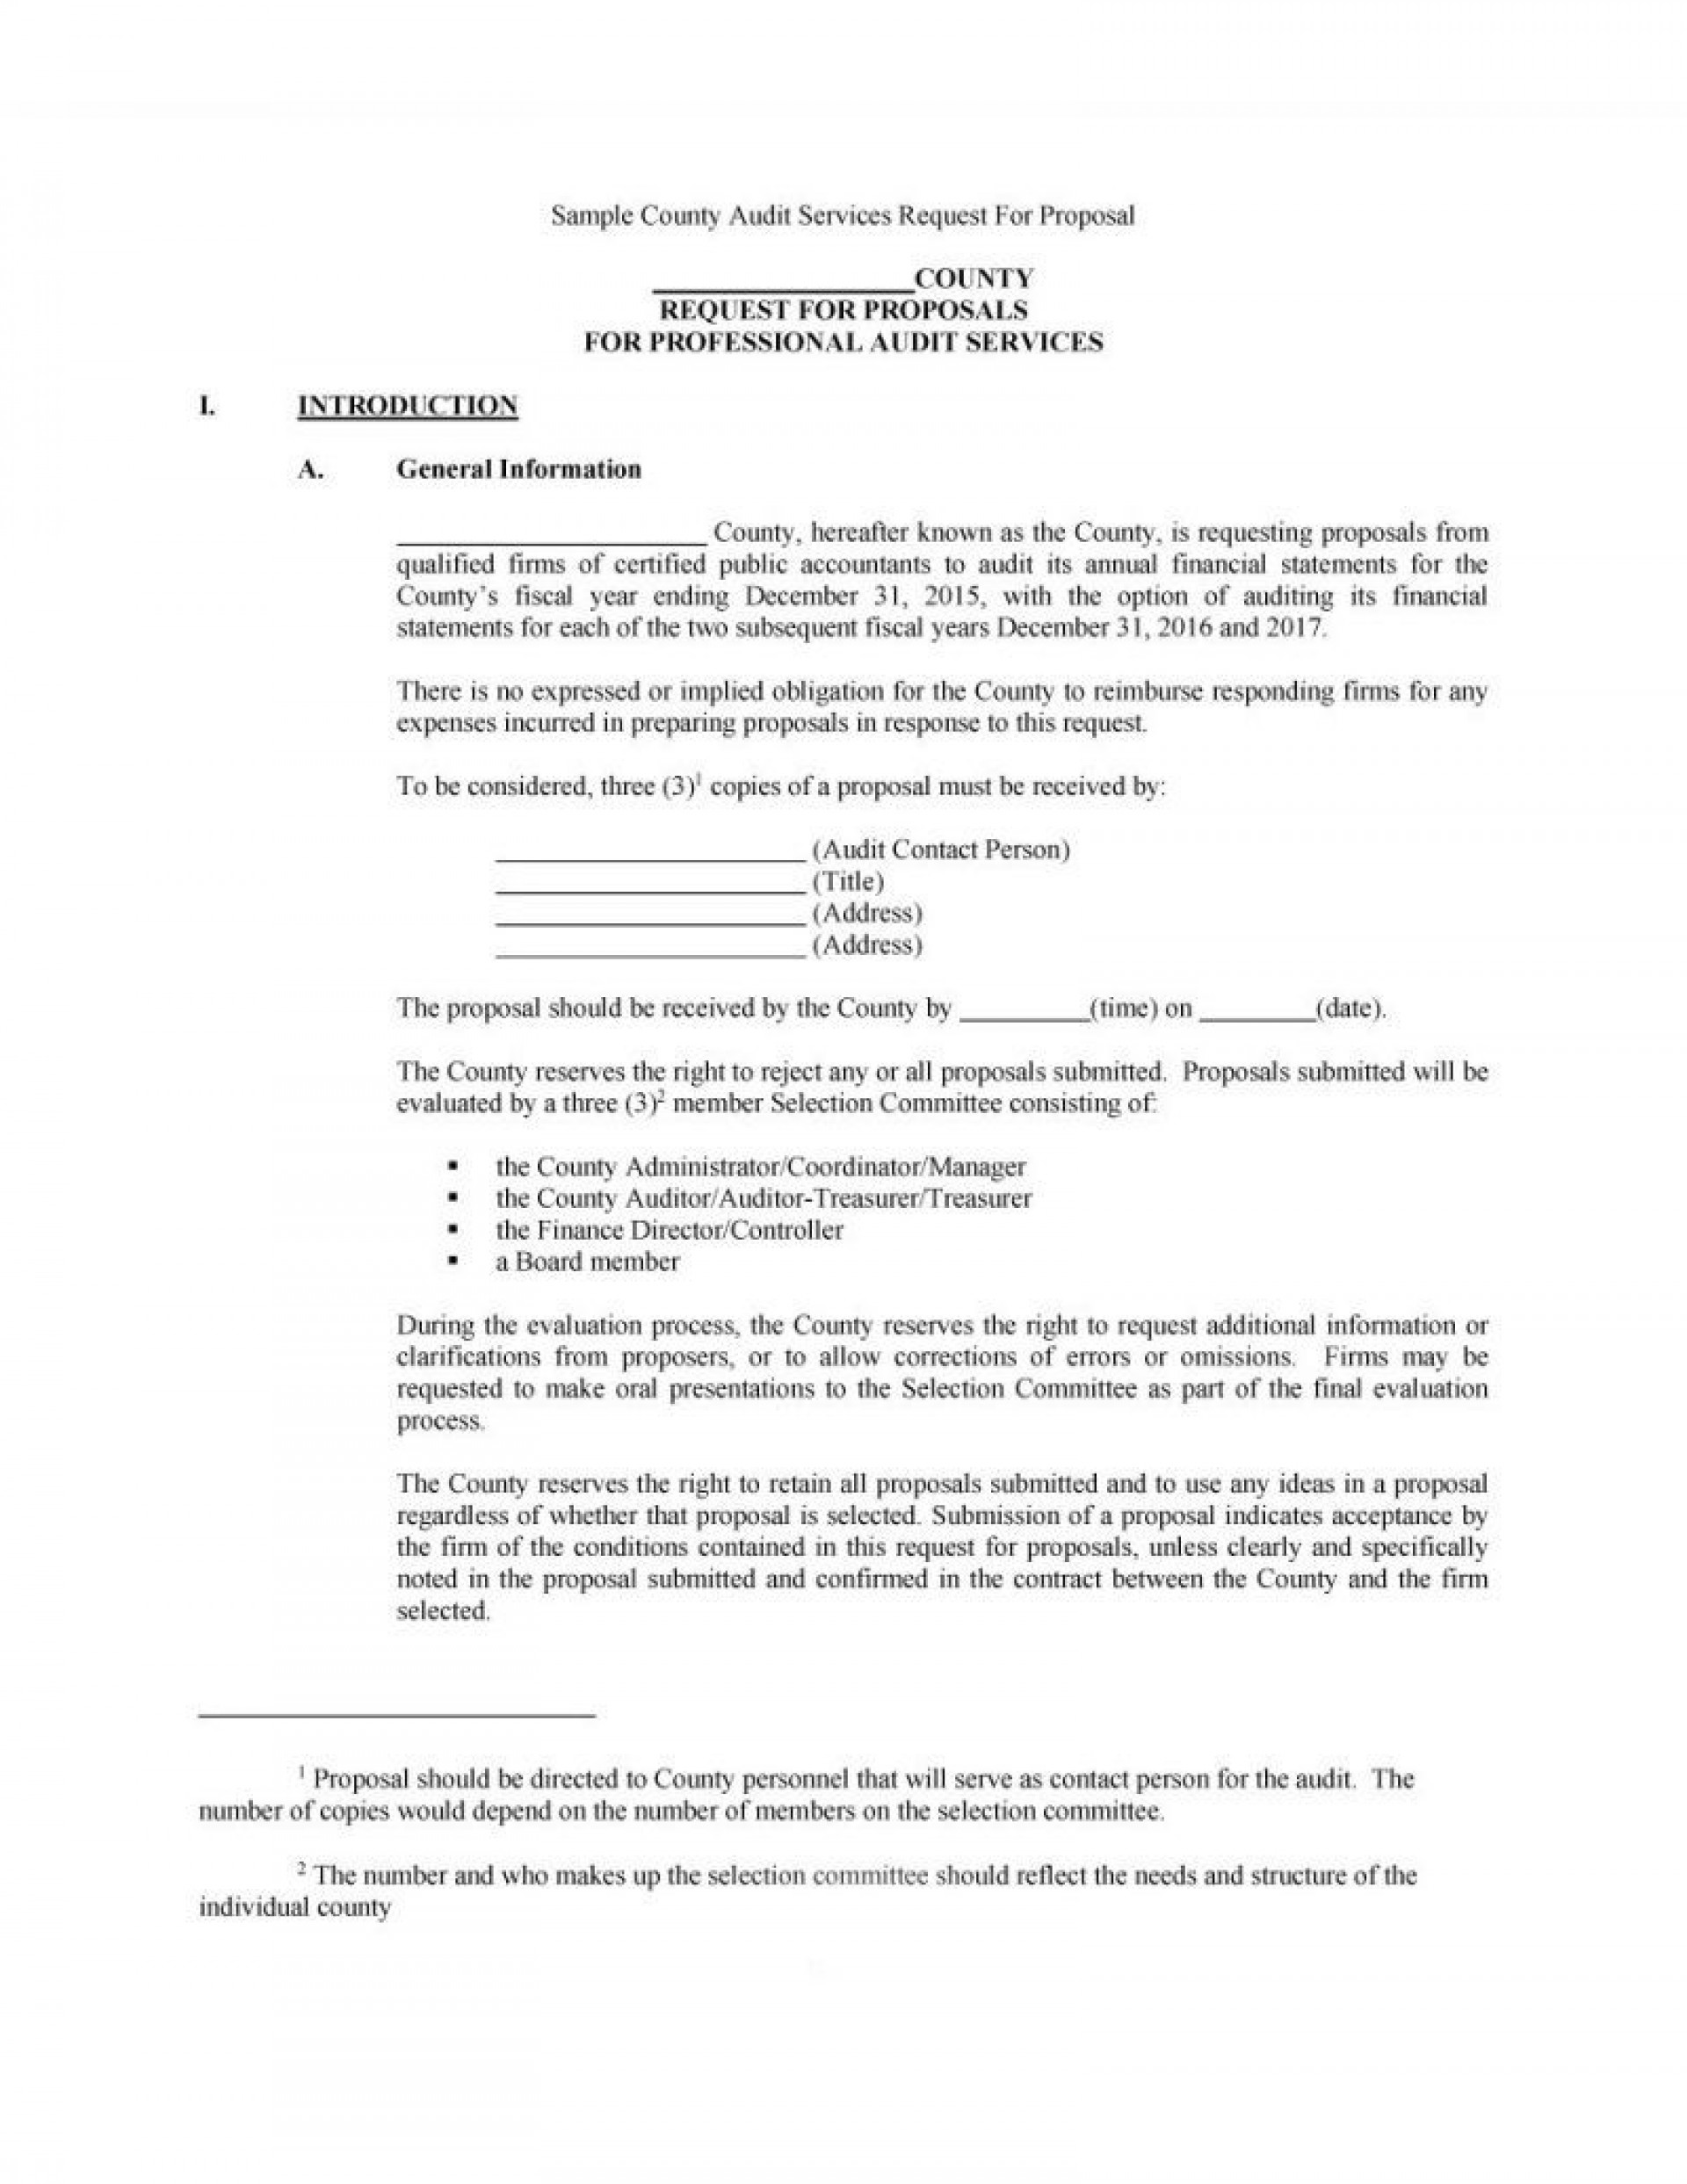 005 Outstanding Request For Proposal Rfp Template Construction Highest Quality 1920